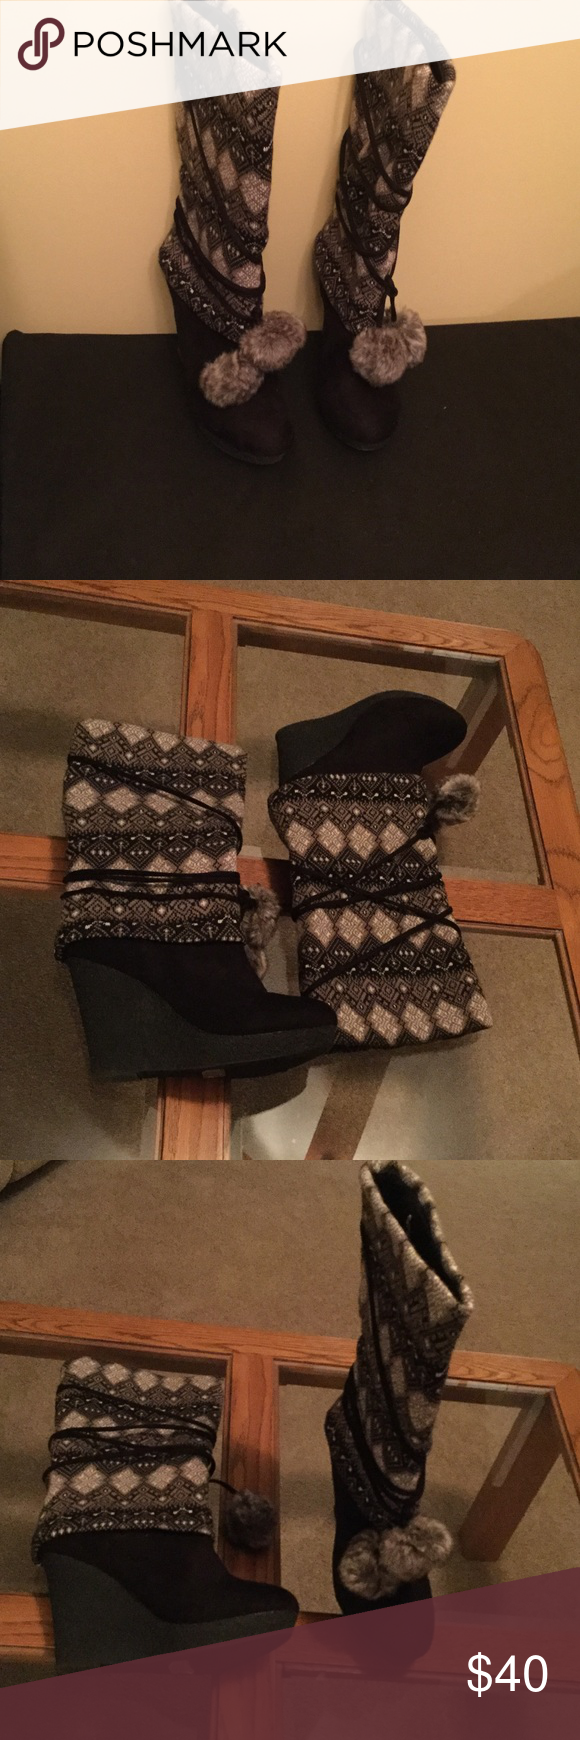 Diva Lounge Boots All man made material.  4 inch wedge bottom of boot feel like suede type & upper boots is a sweater look cushioned inside material.  Like new condition, worn once.  15 inches from floor to top of boot.  Very comfy. Diva Lounge Shoes Winter & Rain Boots